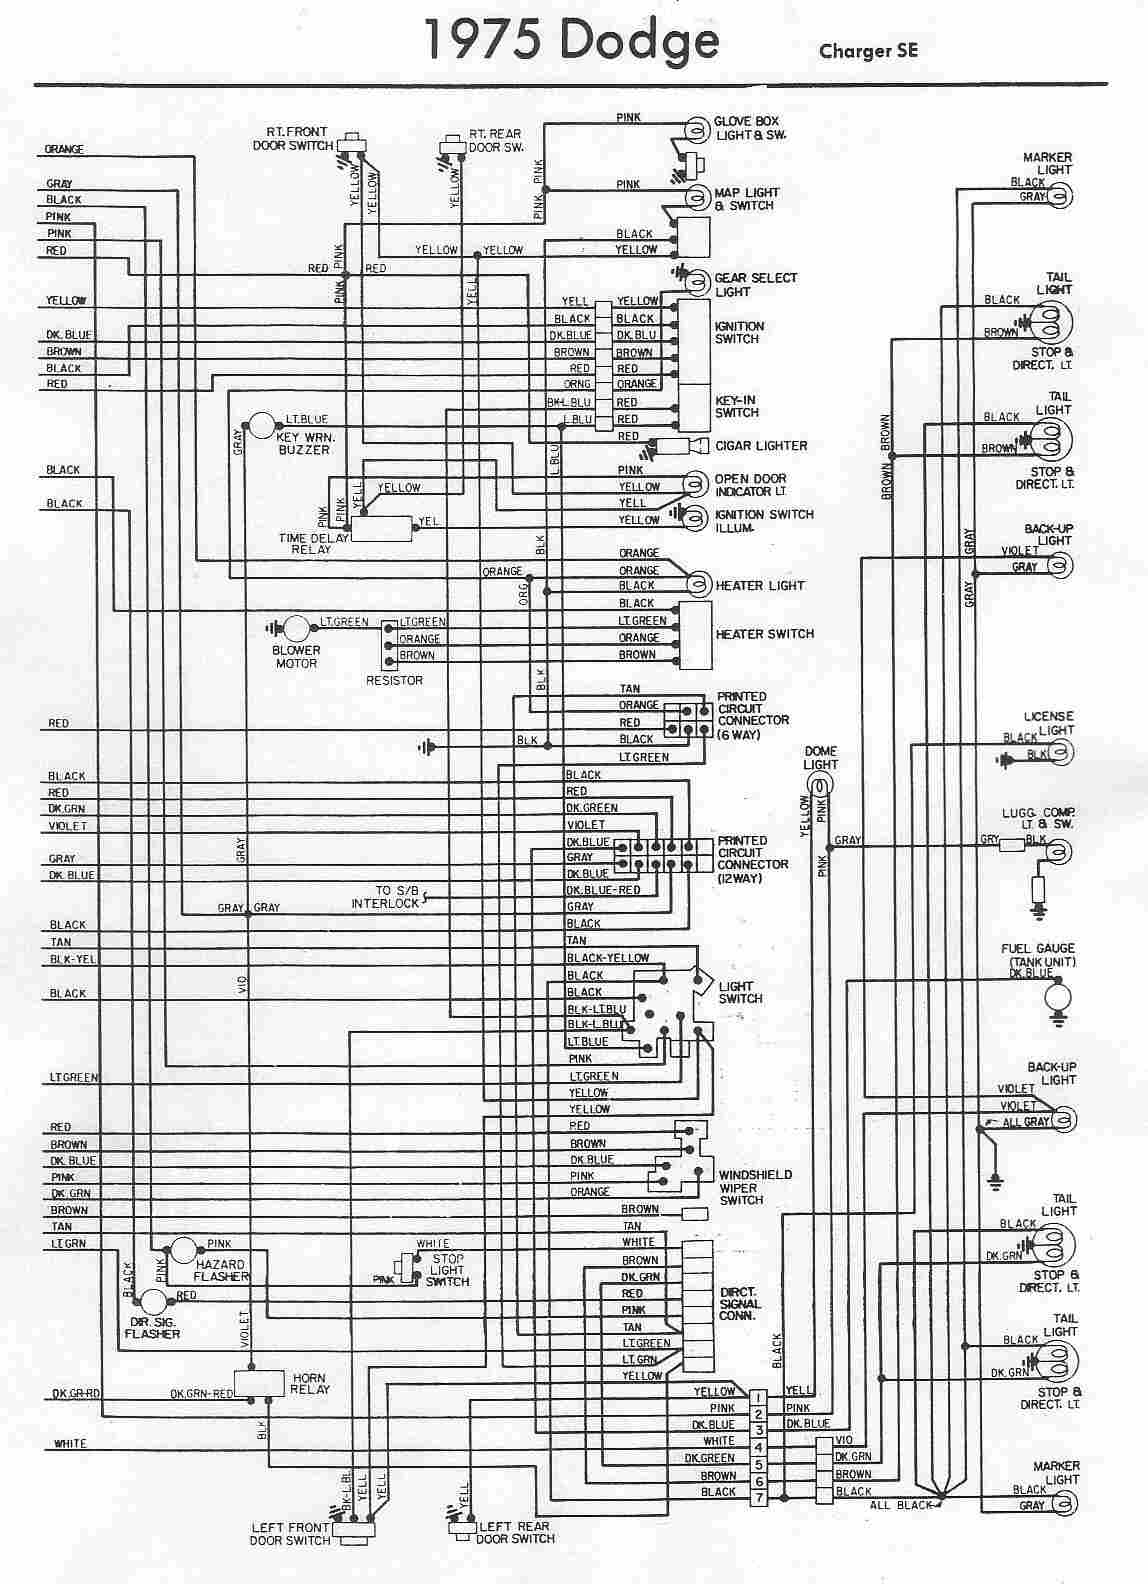 hight resolution of 1973 dodge w200 wiring diagram wiring diagram library1978 dodge power wagon wiring diagram wiring diagram g11